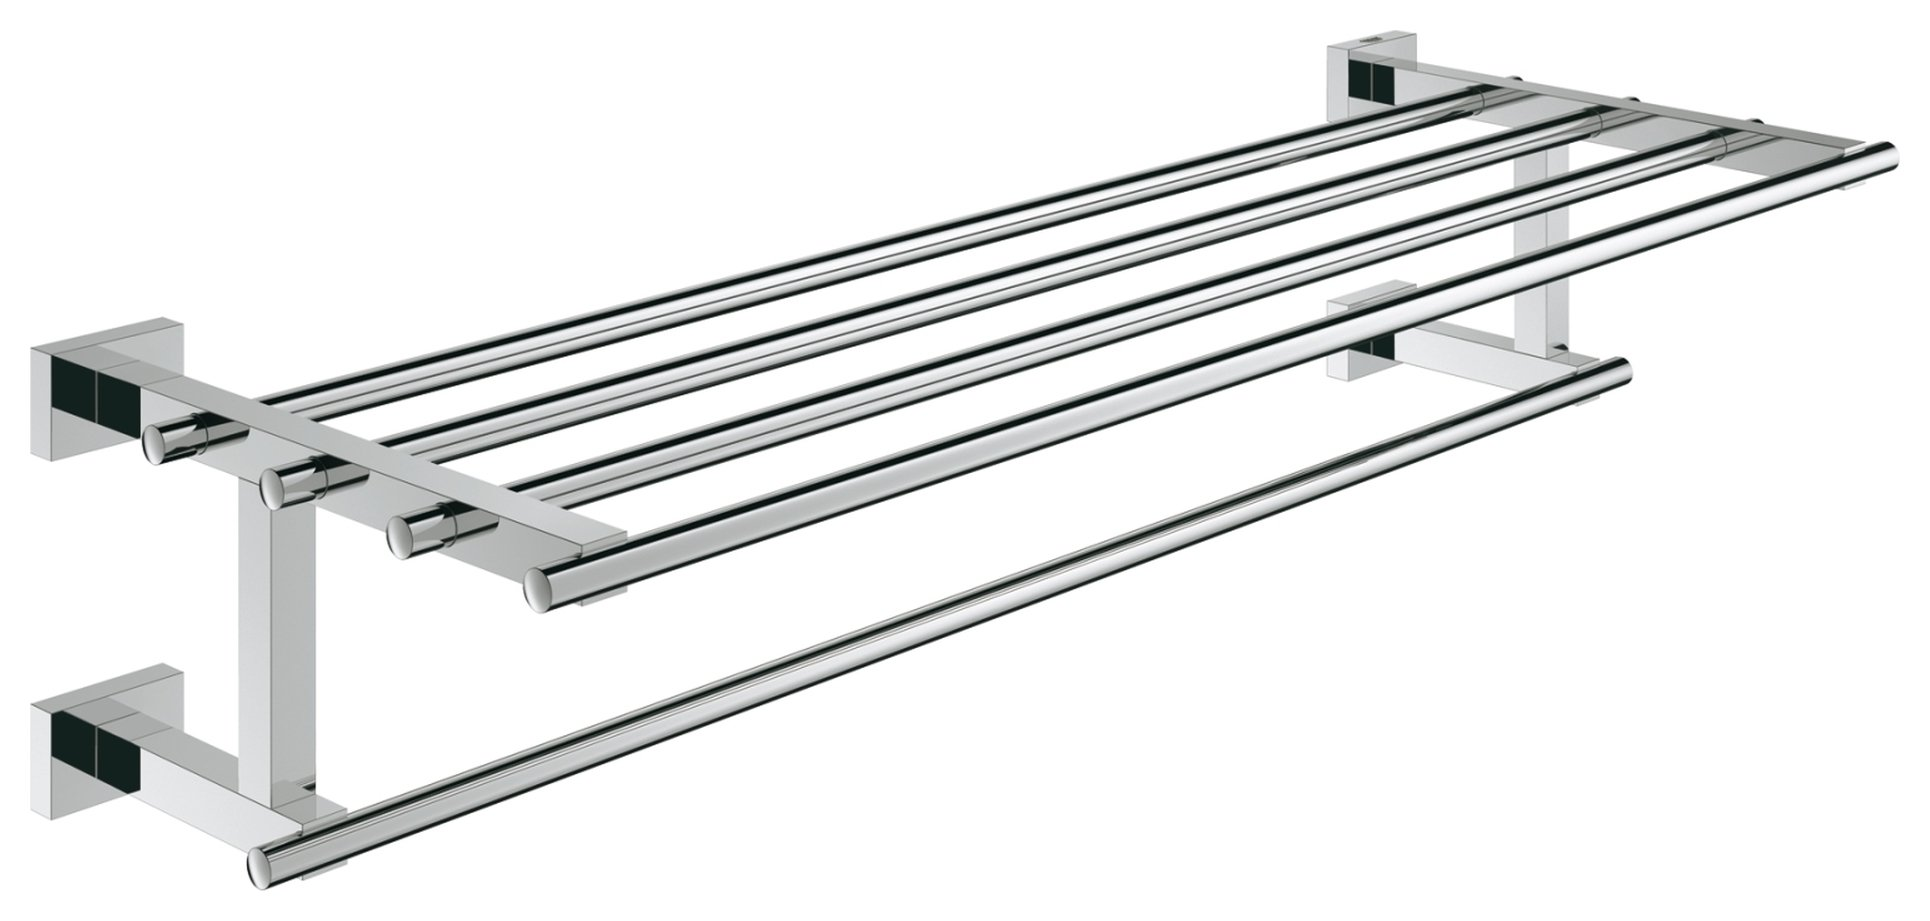 Image of Grohe Essentials - Cube Multi - Towel Rack